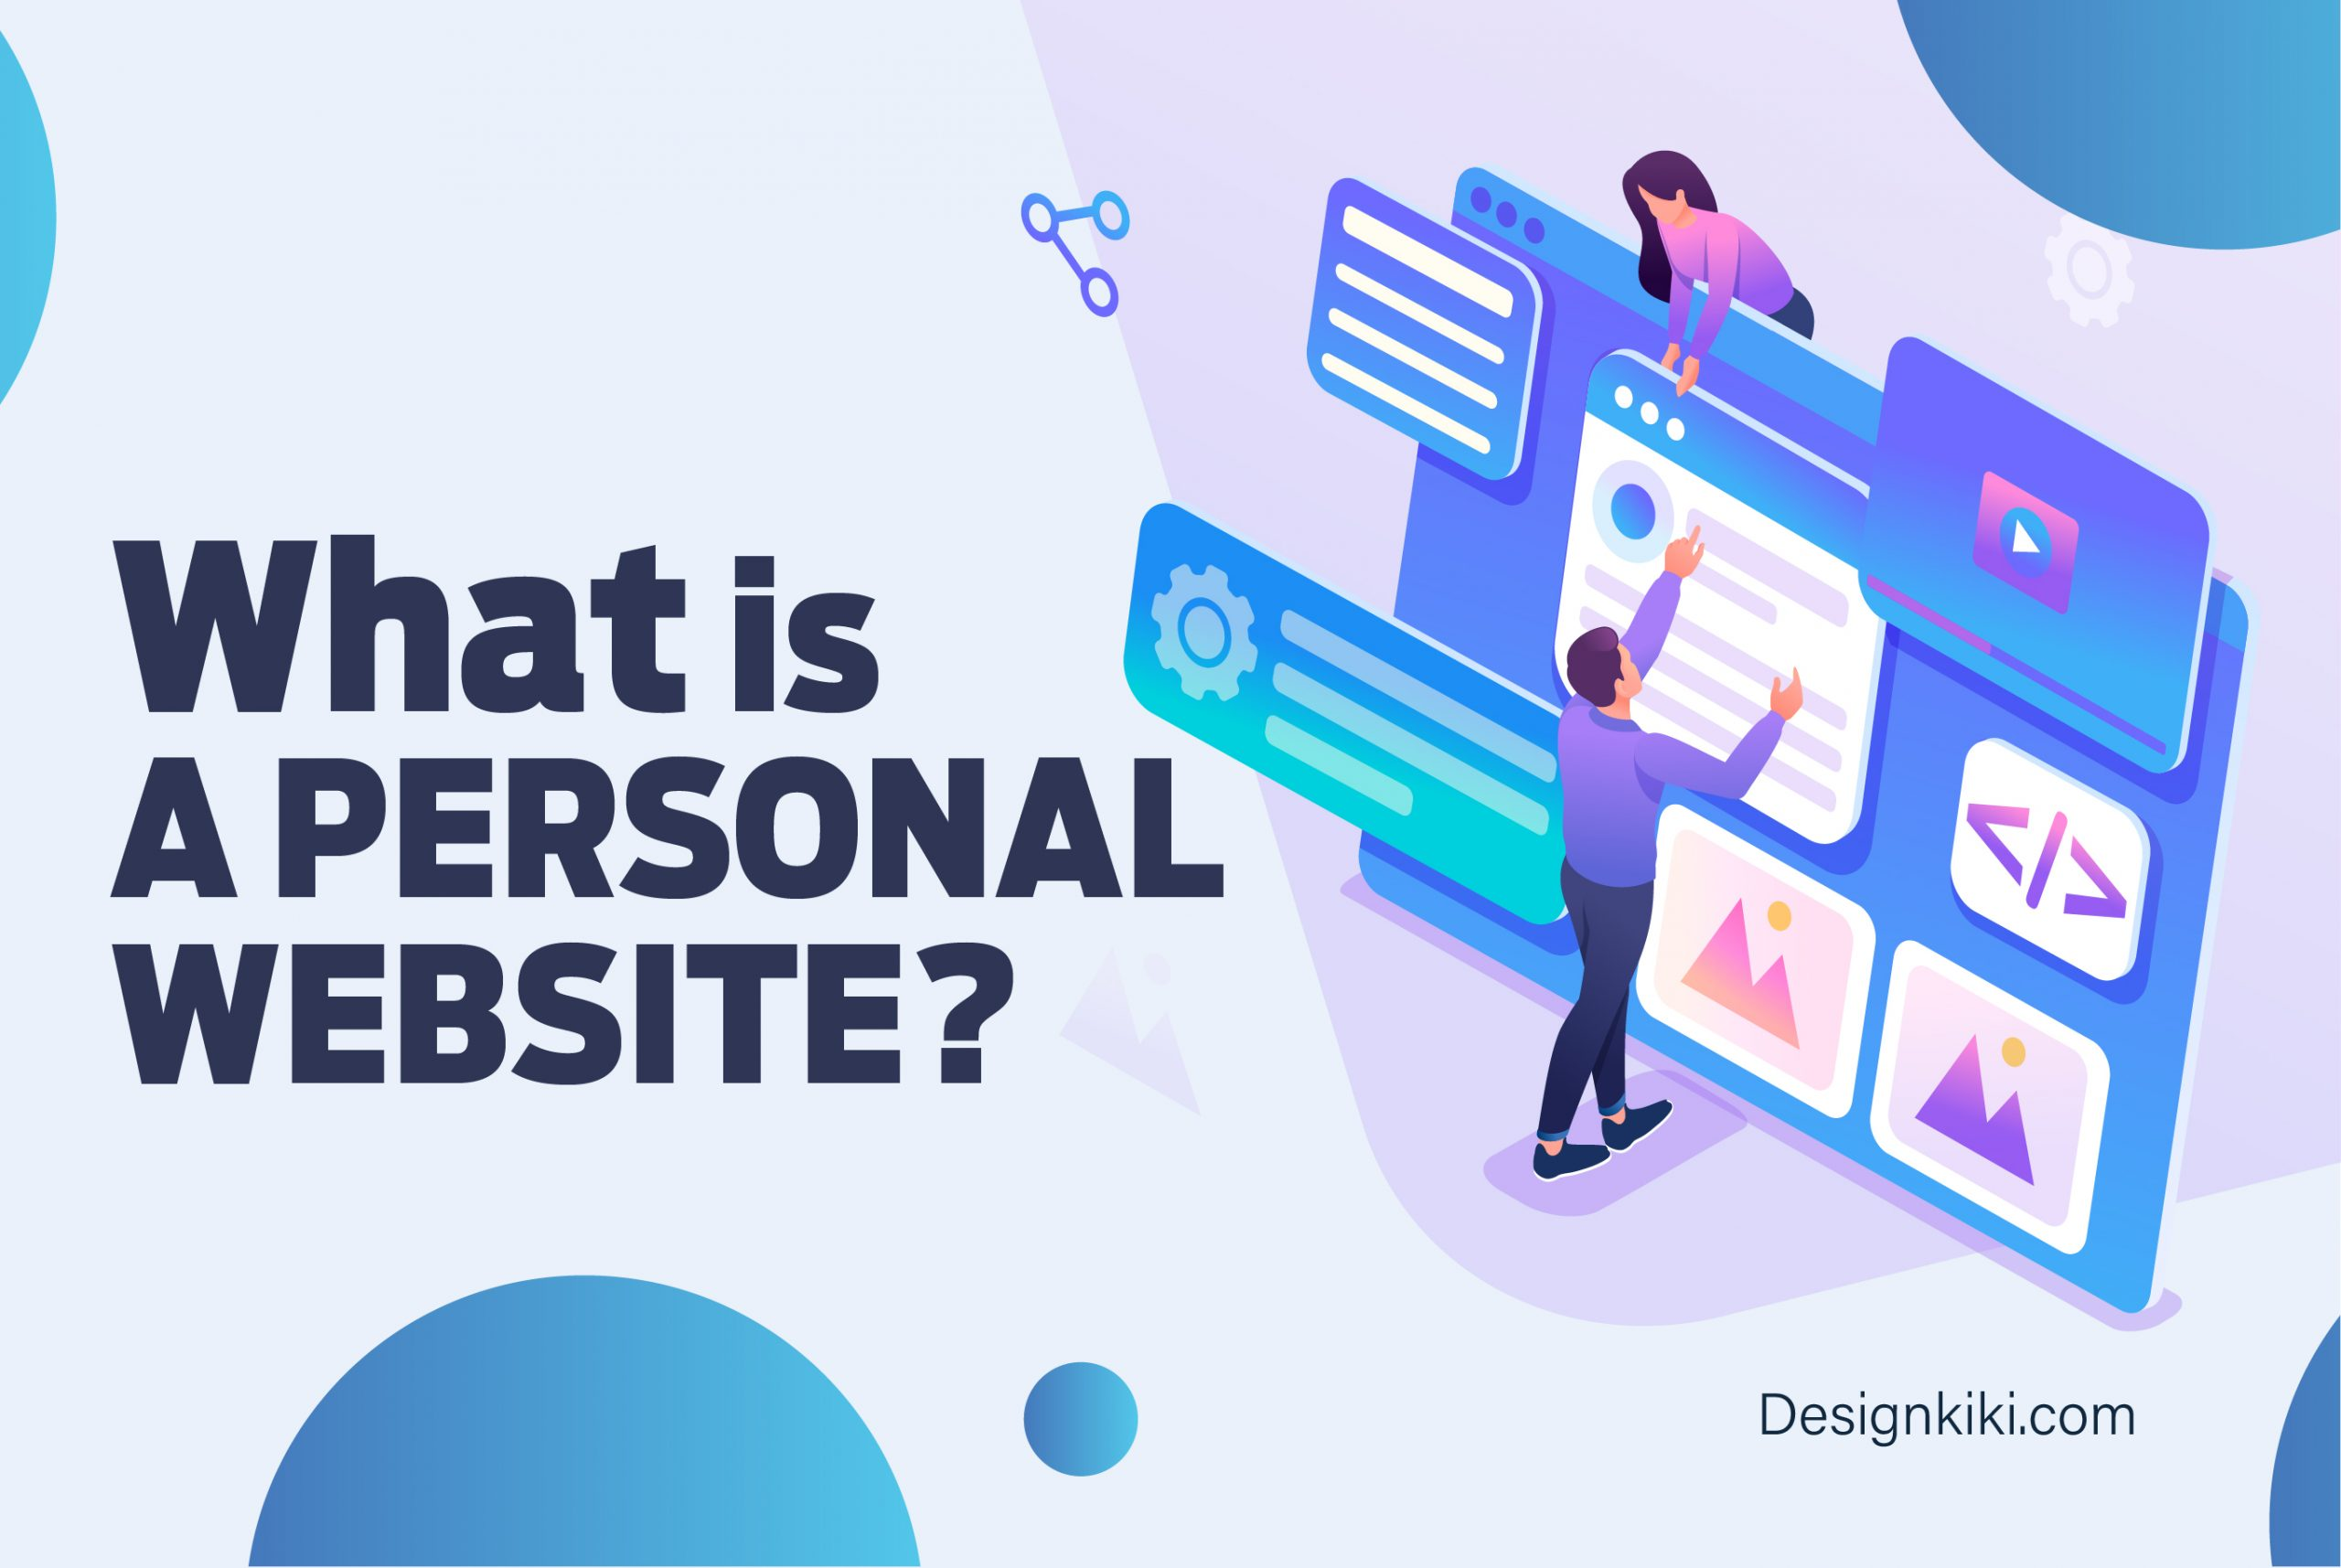 what is a personal website?